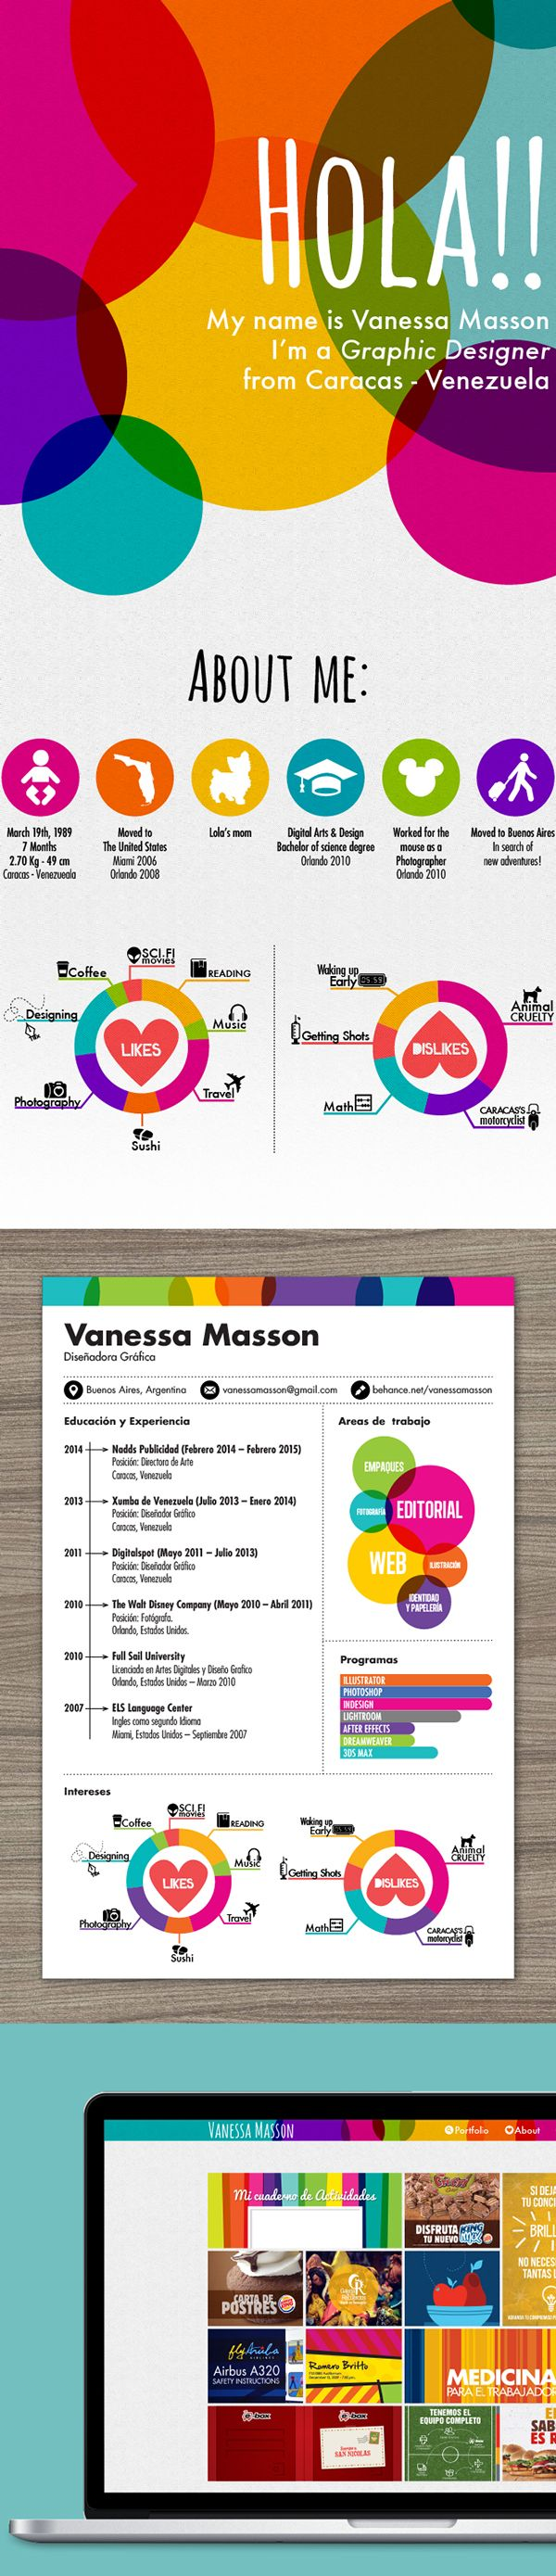 Personal CV on Behance                                                                                                                                                      Más